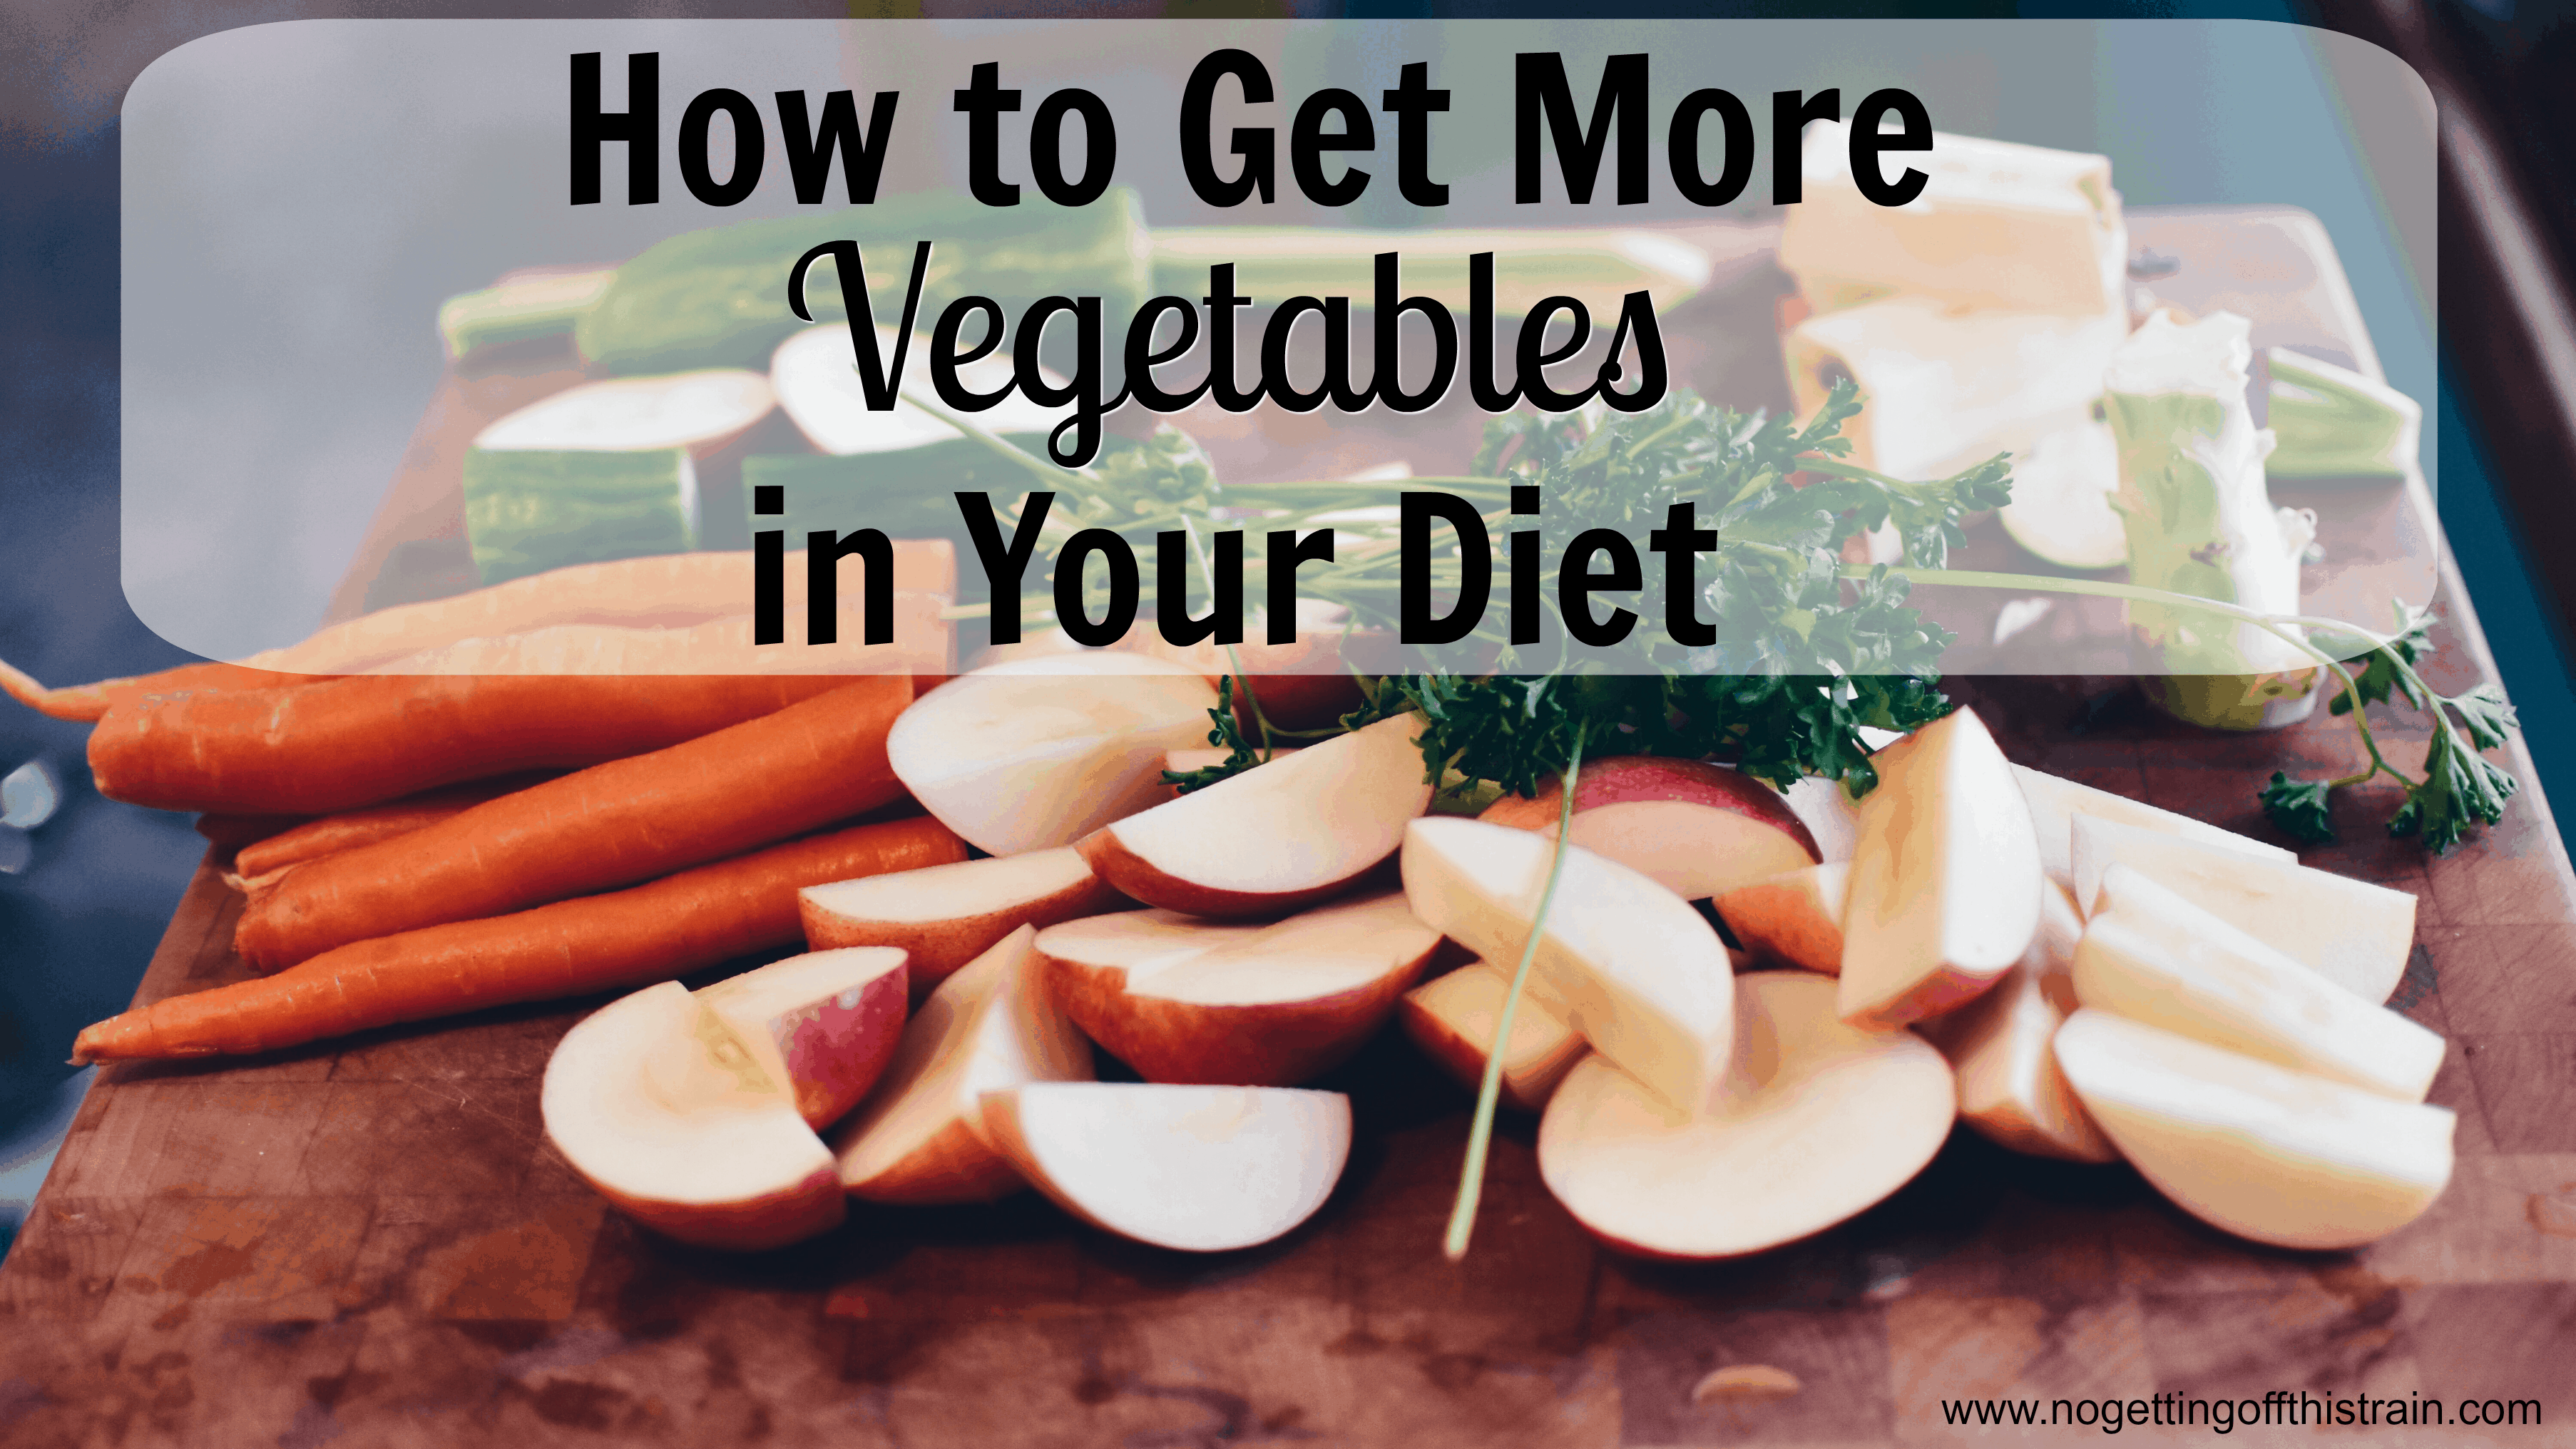 How to Get More Vegetables in Your Diet